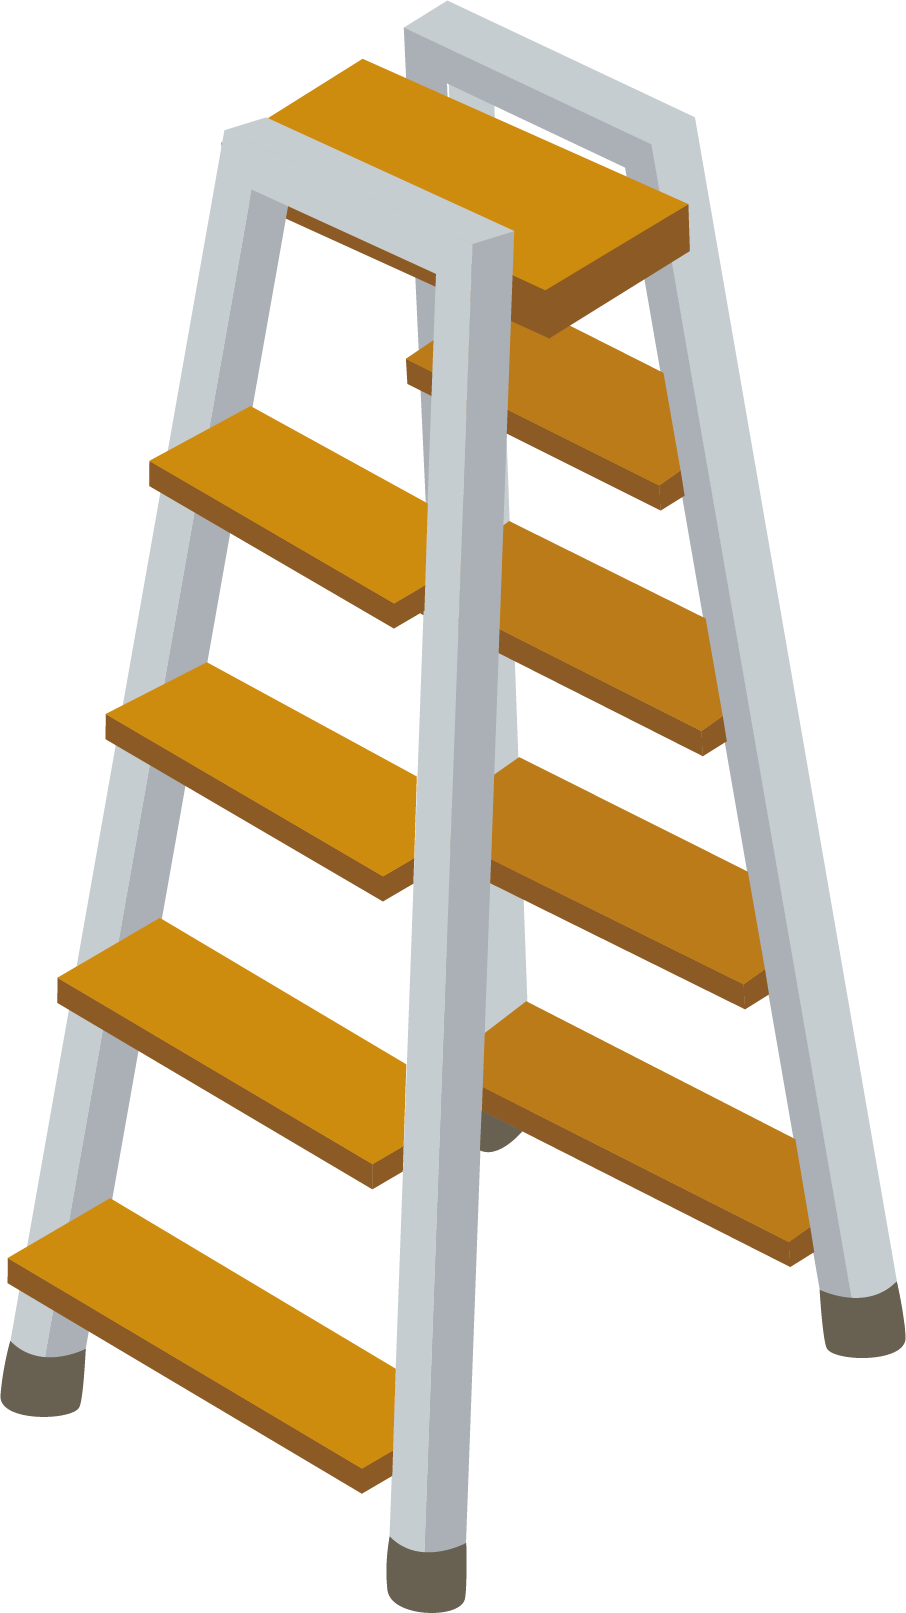 Clip art material picture. Ladder clipart yellow ladder